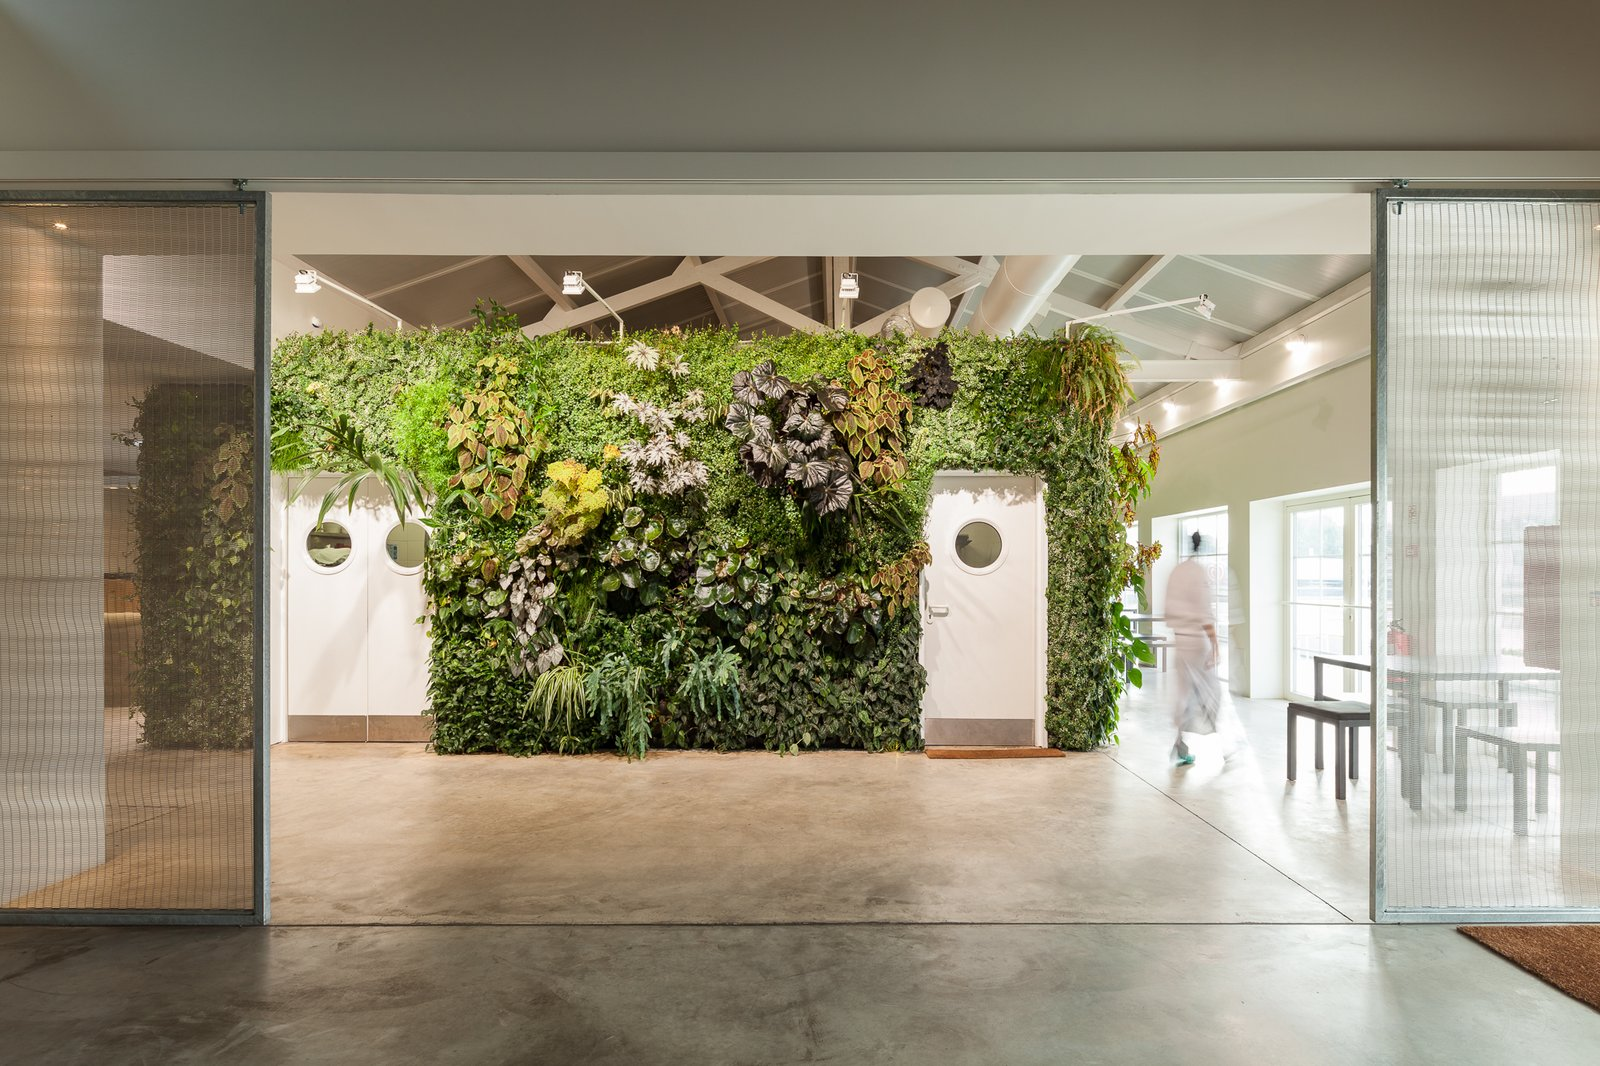 Doors, Interior, Metal, and Sliding Door Type Overall, the plant wall covers over 1,200 square feet of surface area.  Vertical Gardens Spruce Up a Dusty Monument by Allie Weiss